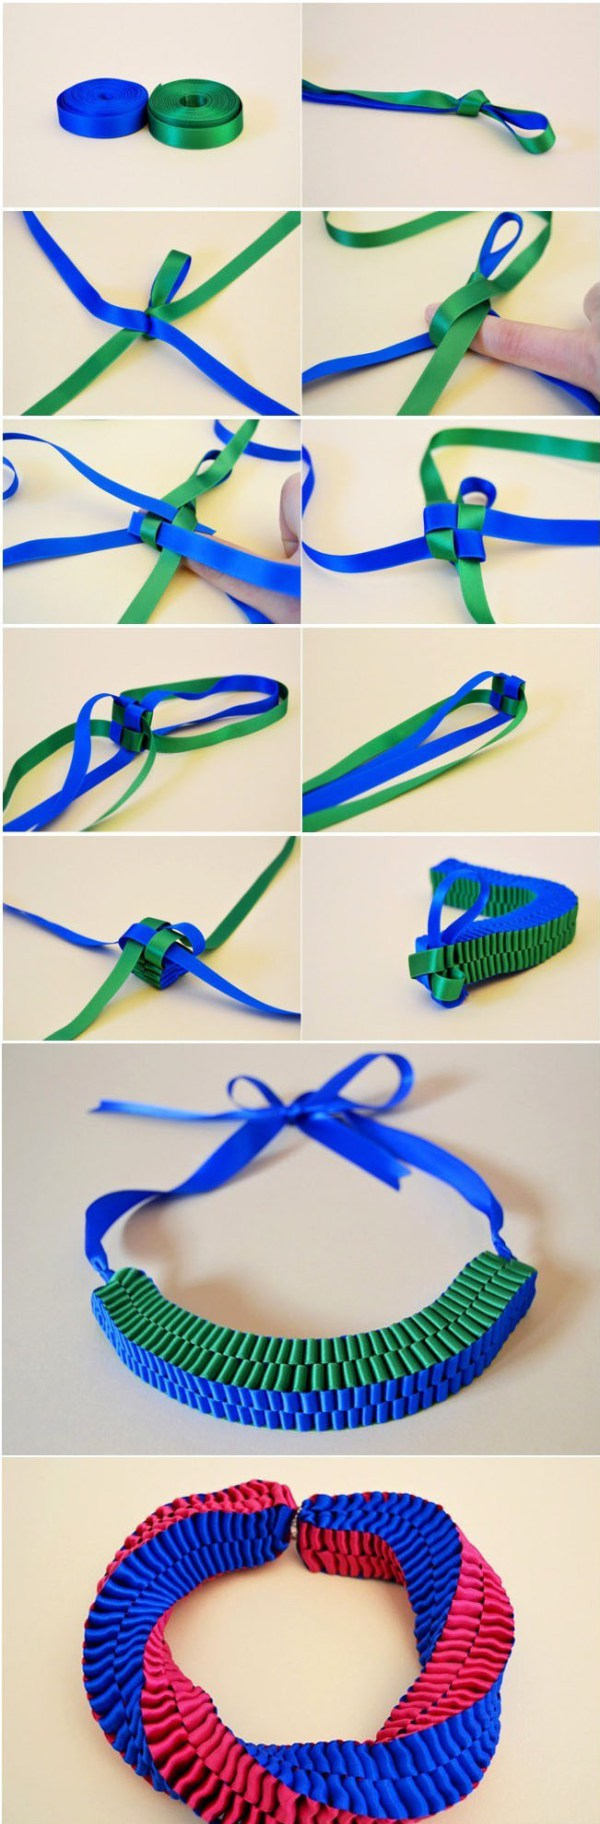 Make A Ribbon Bracelet wonderfuldiy1 Wonderful DIY Unique Ribbon Bracelet